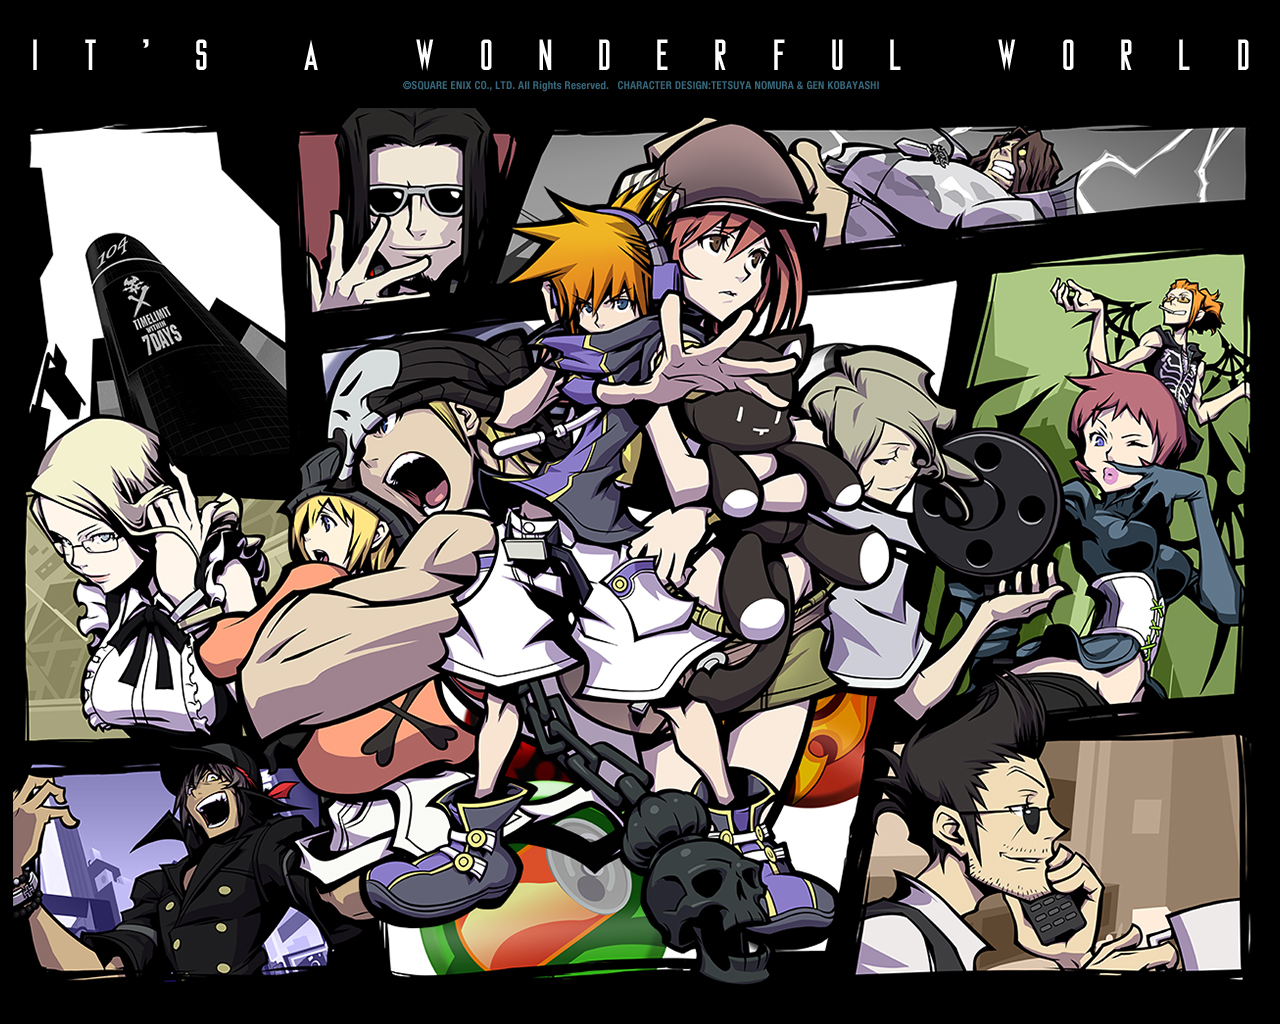 The World Ends With You Wallpaper